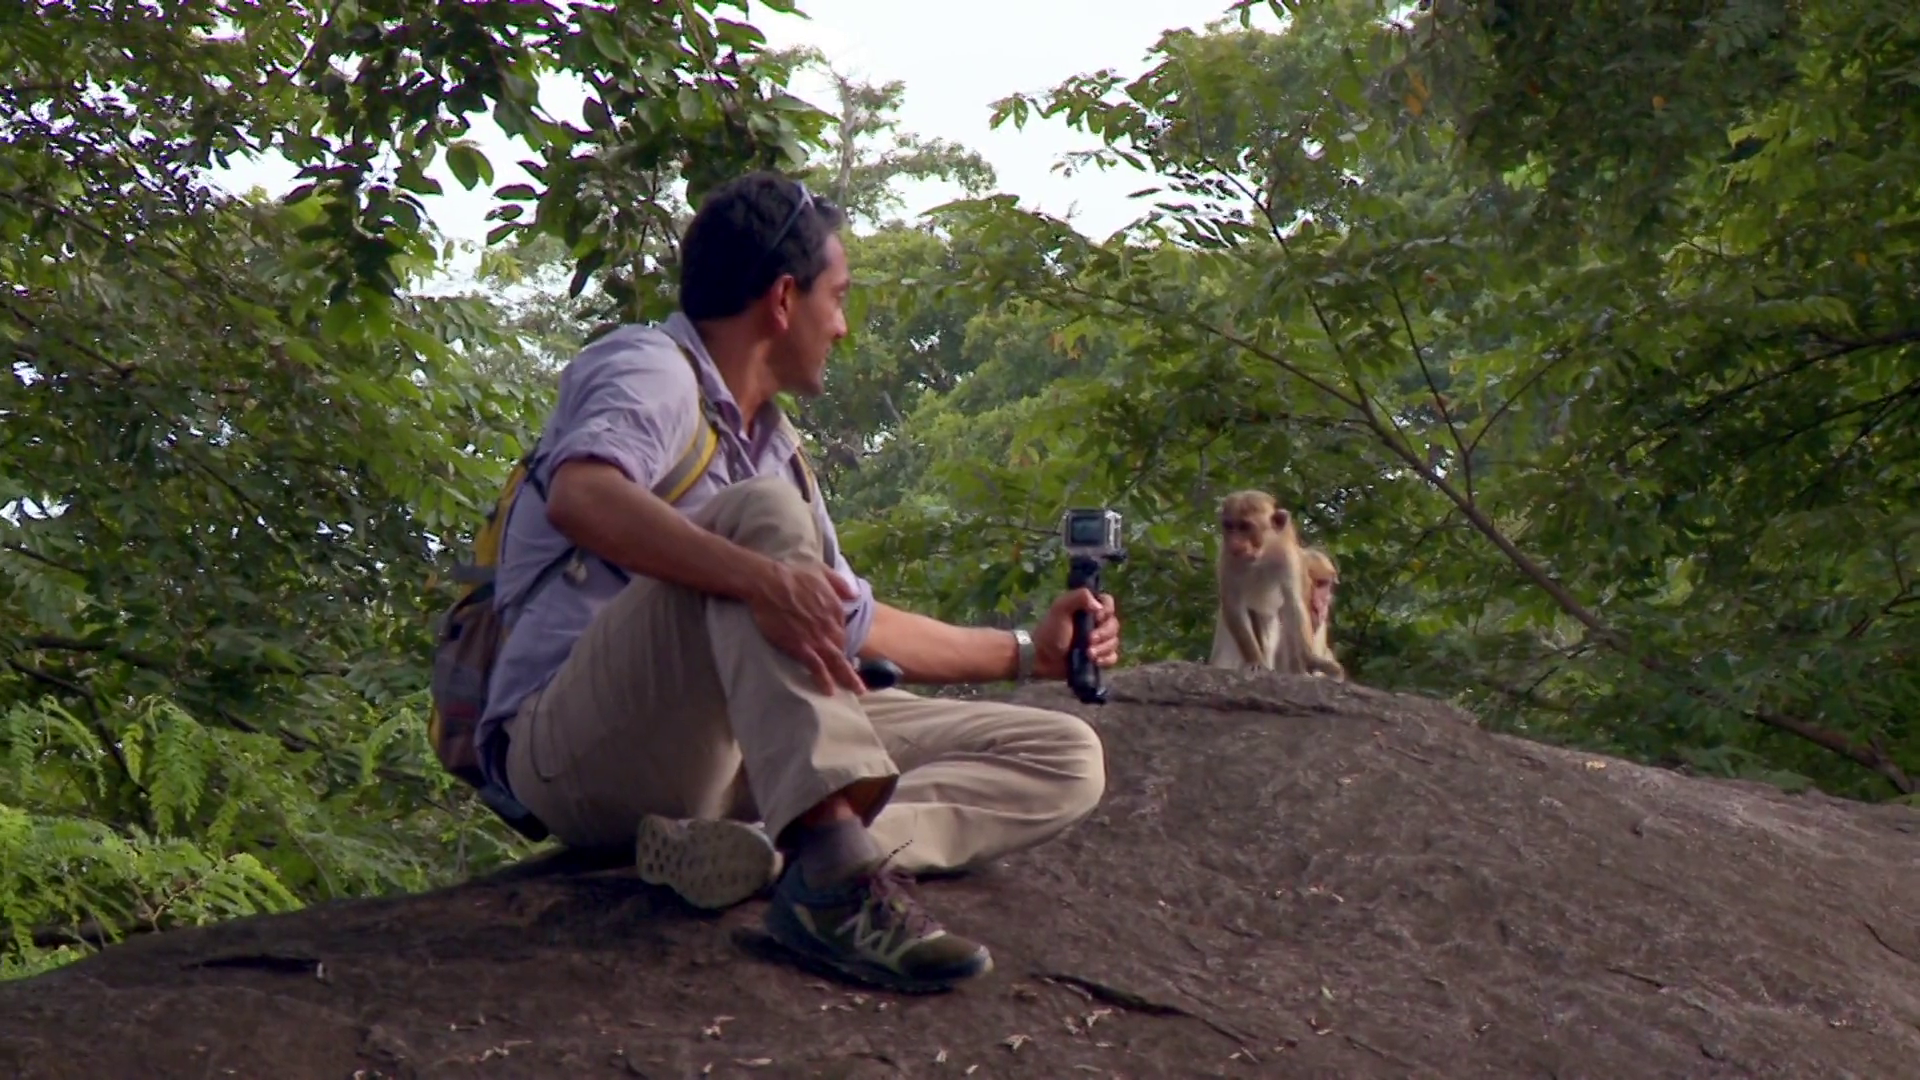 Dr. M Sanjayan - Monkey Kingdom Featurette